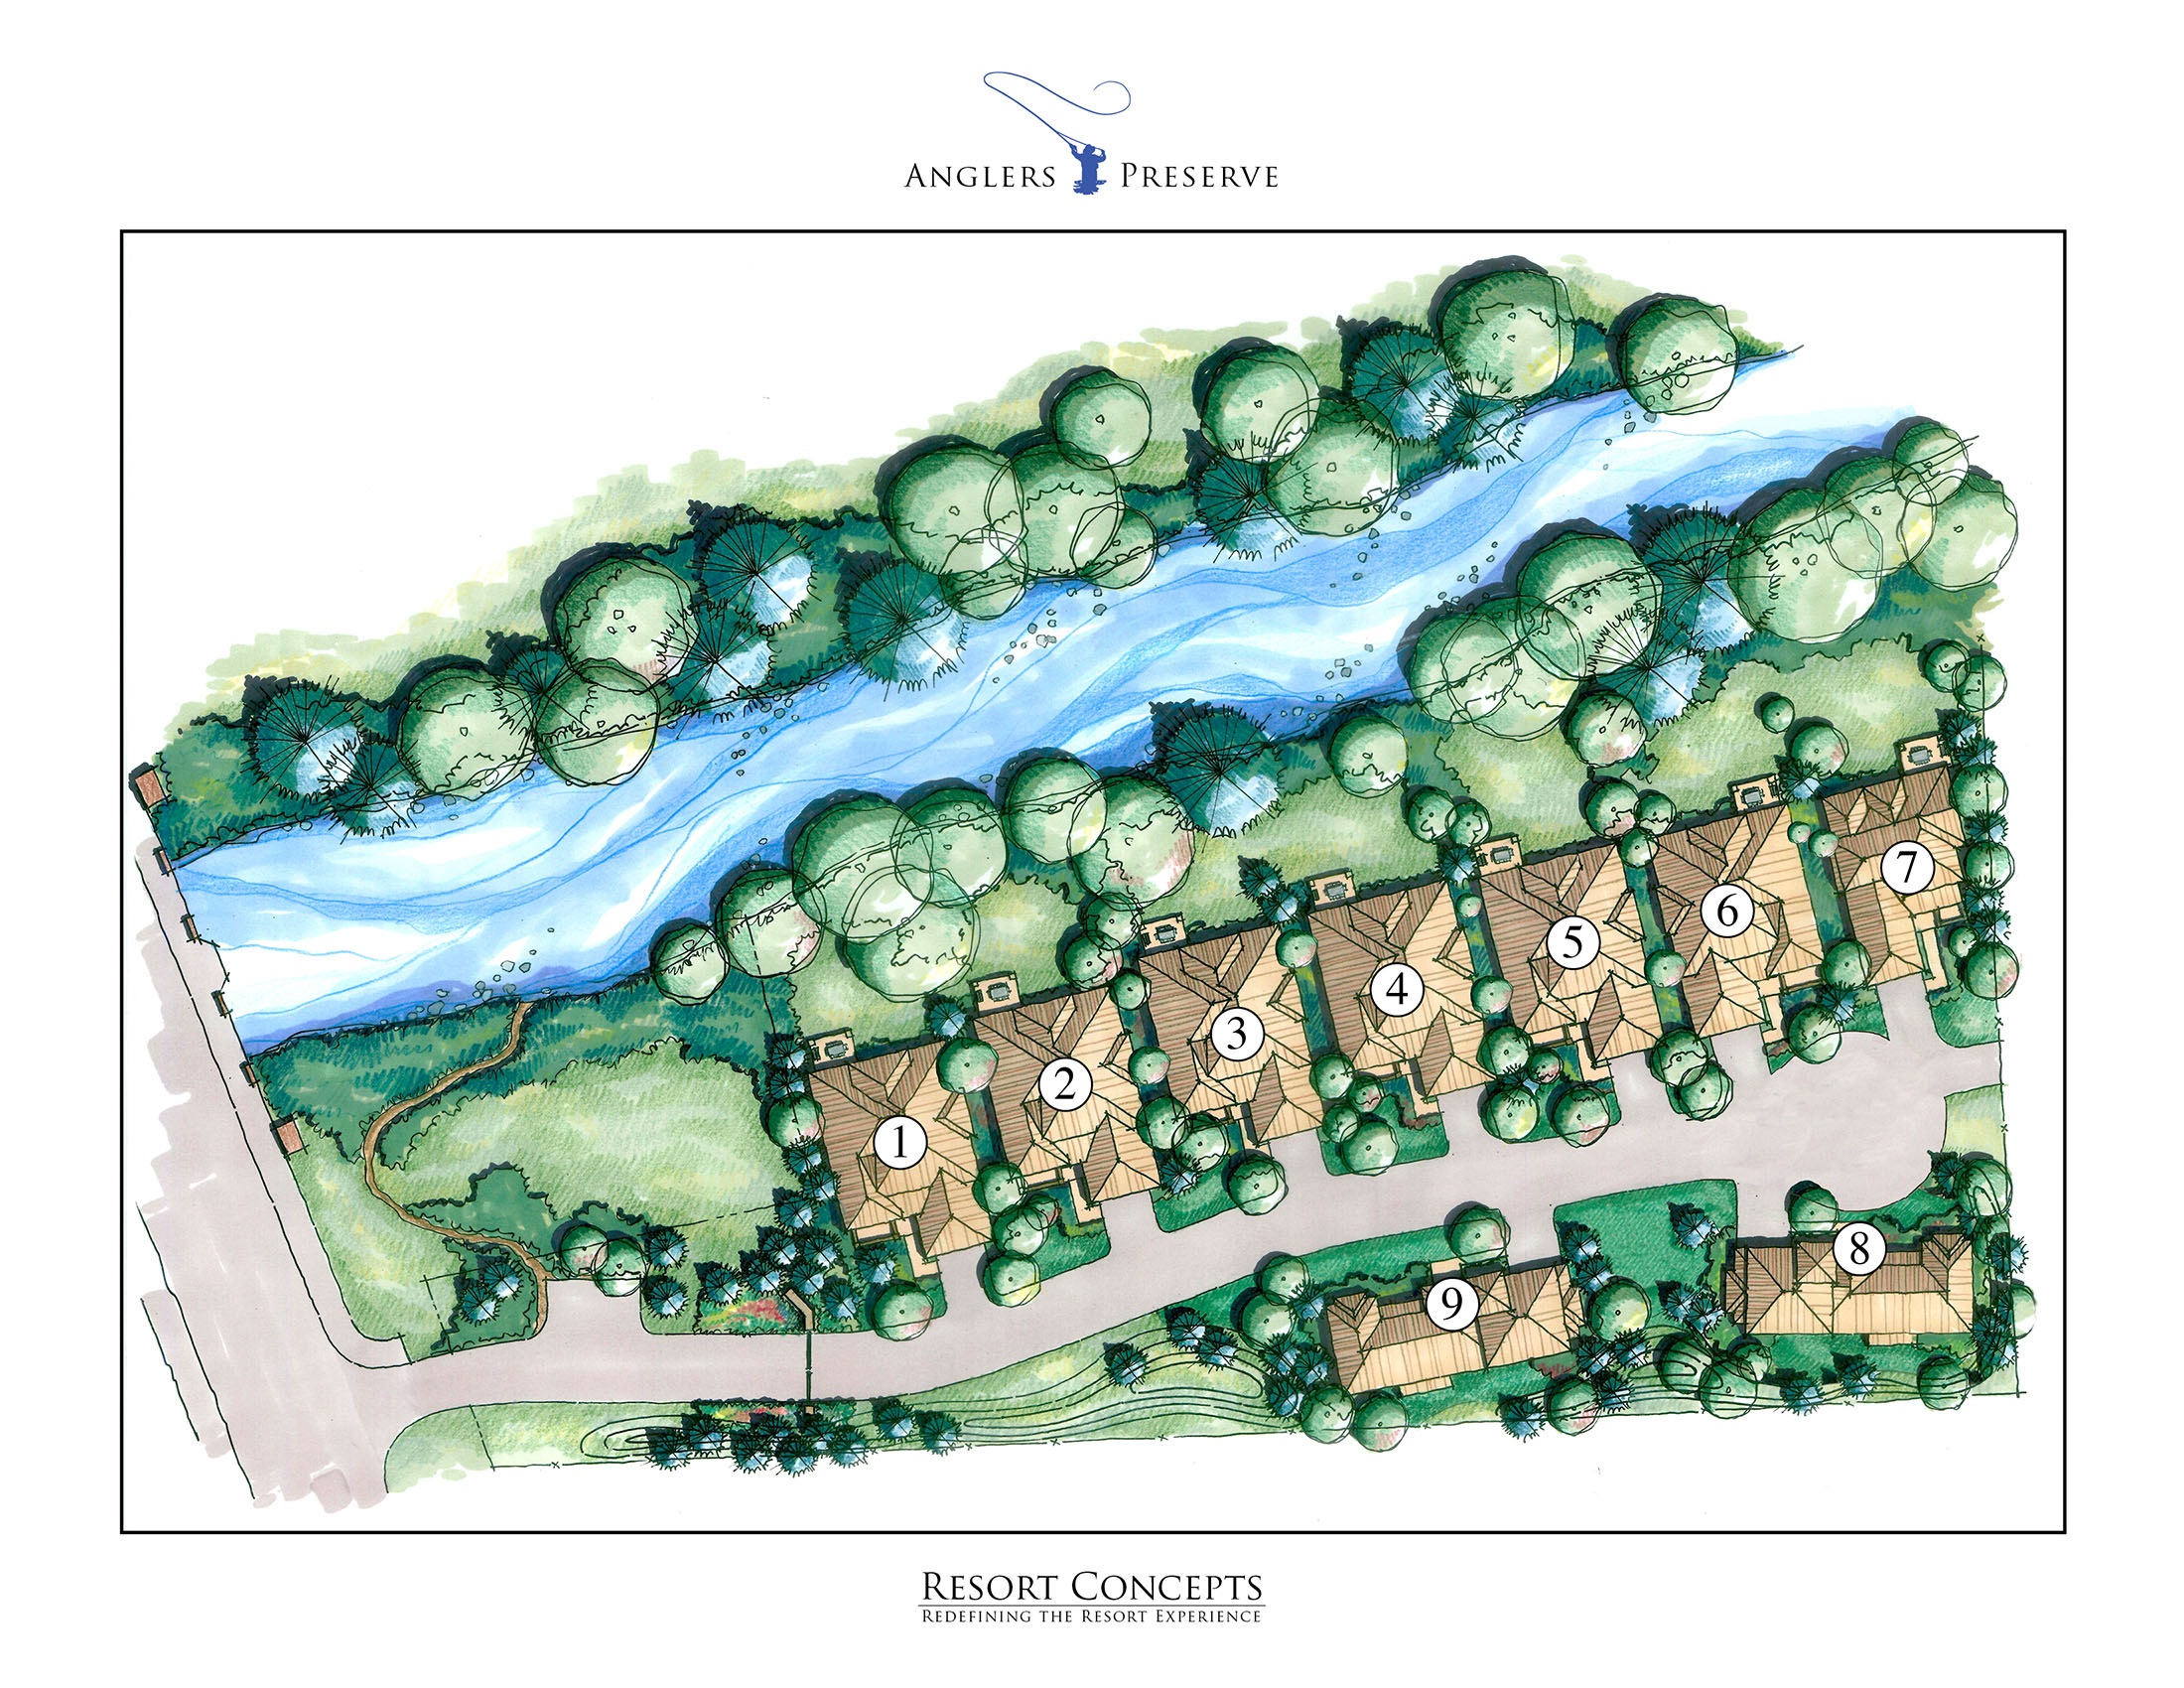 Anglers Site Plan No labels 7.7.16.jpg